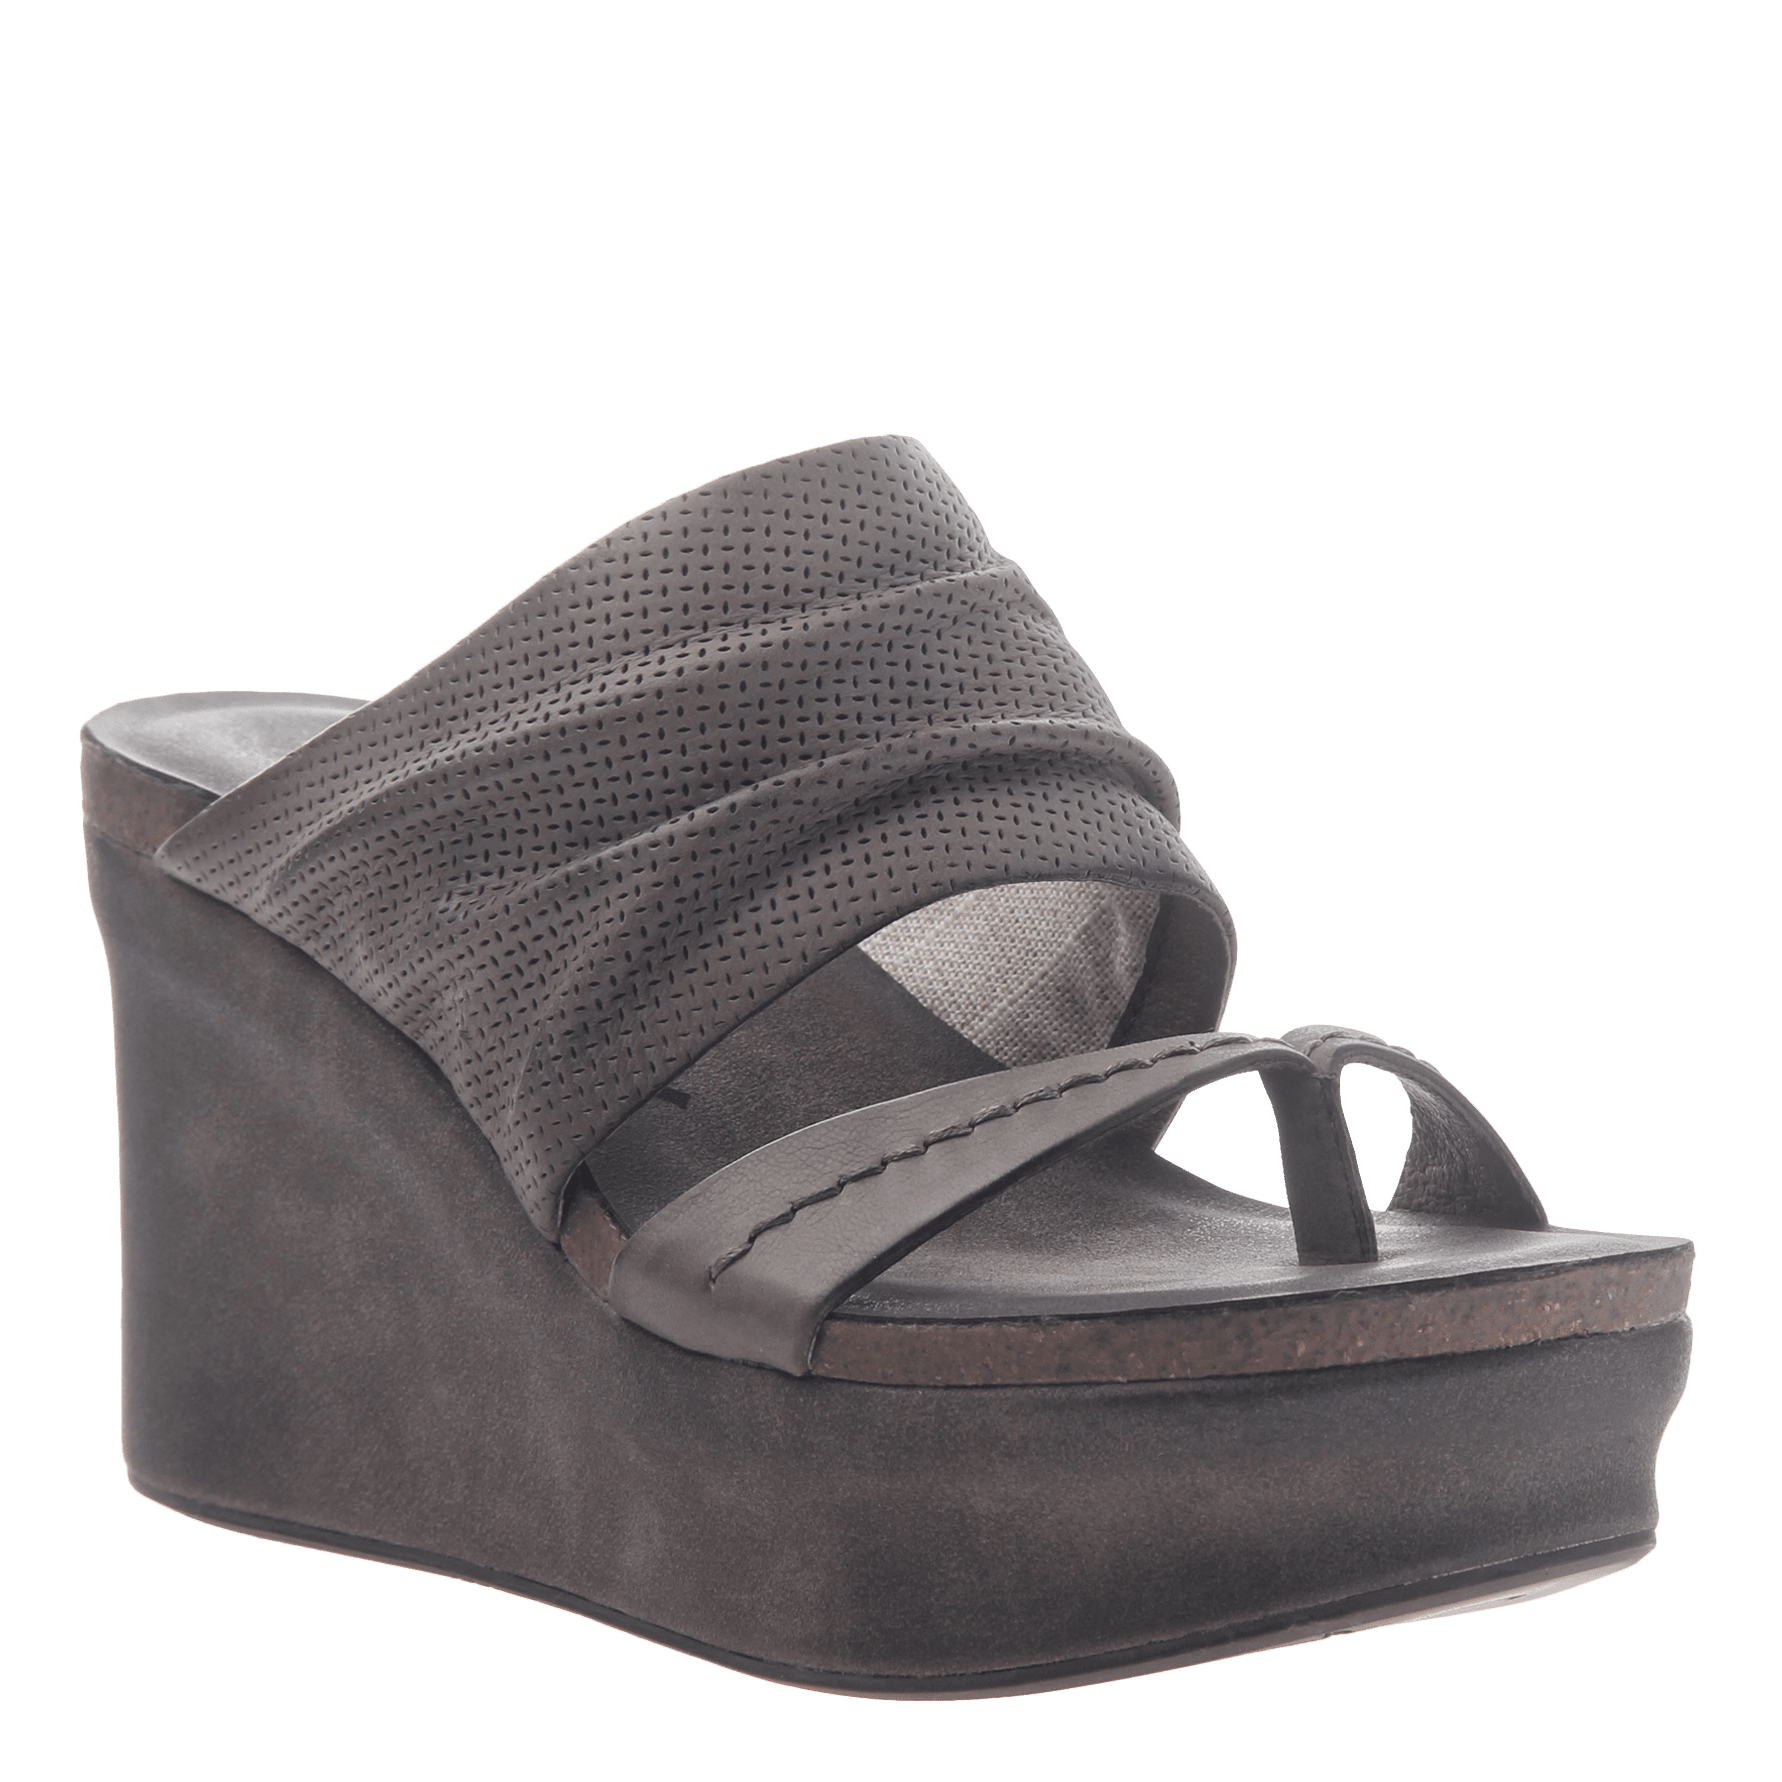 7393fbce3a88 Womens wedge tailgate in Zinc